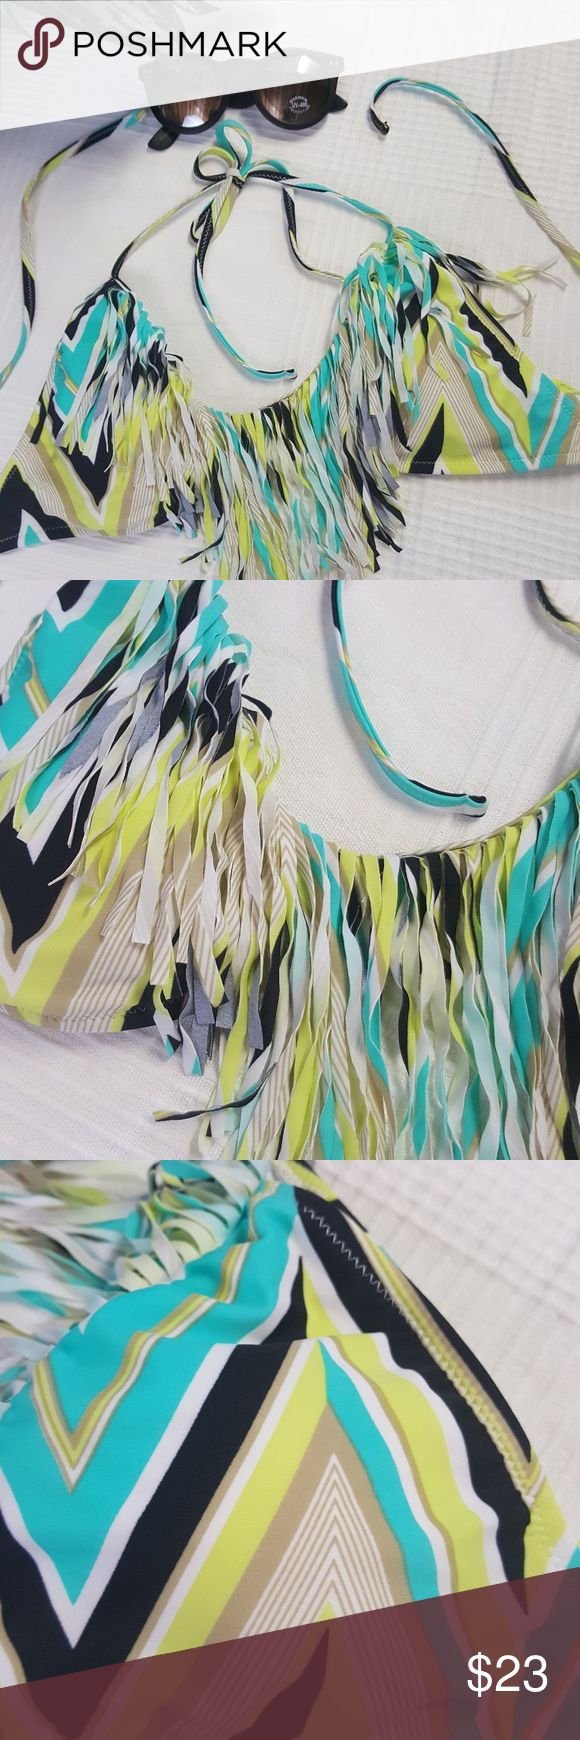 R Collection by raisins Bikini Top w Fringe Size L New without tags. Multi-color triangle bikini top with fringe. Size large. R Collection by raisins Swim Bikinis